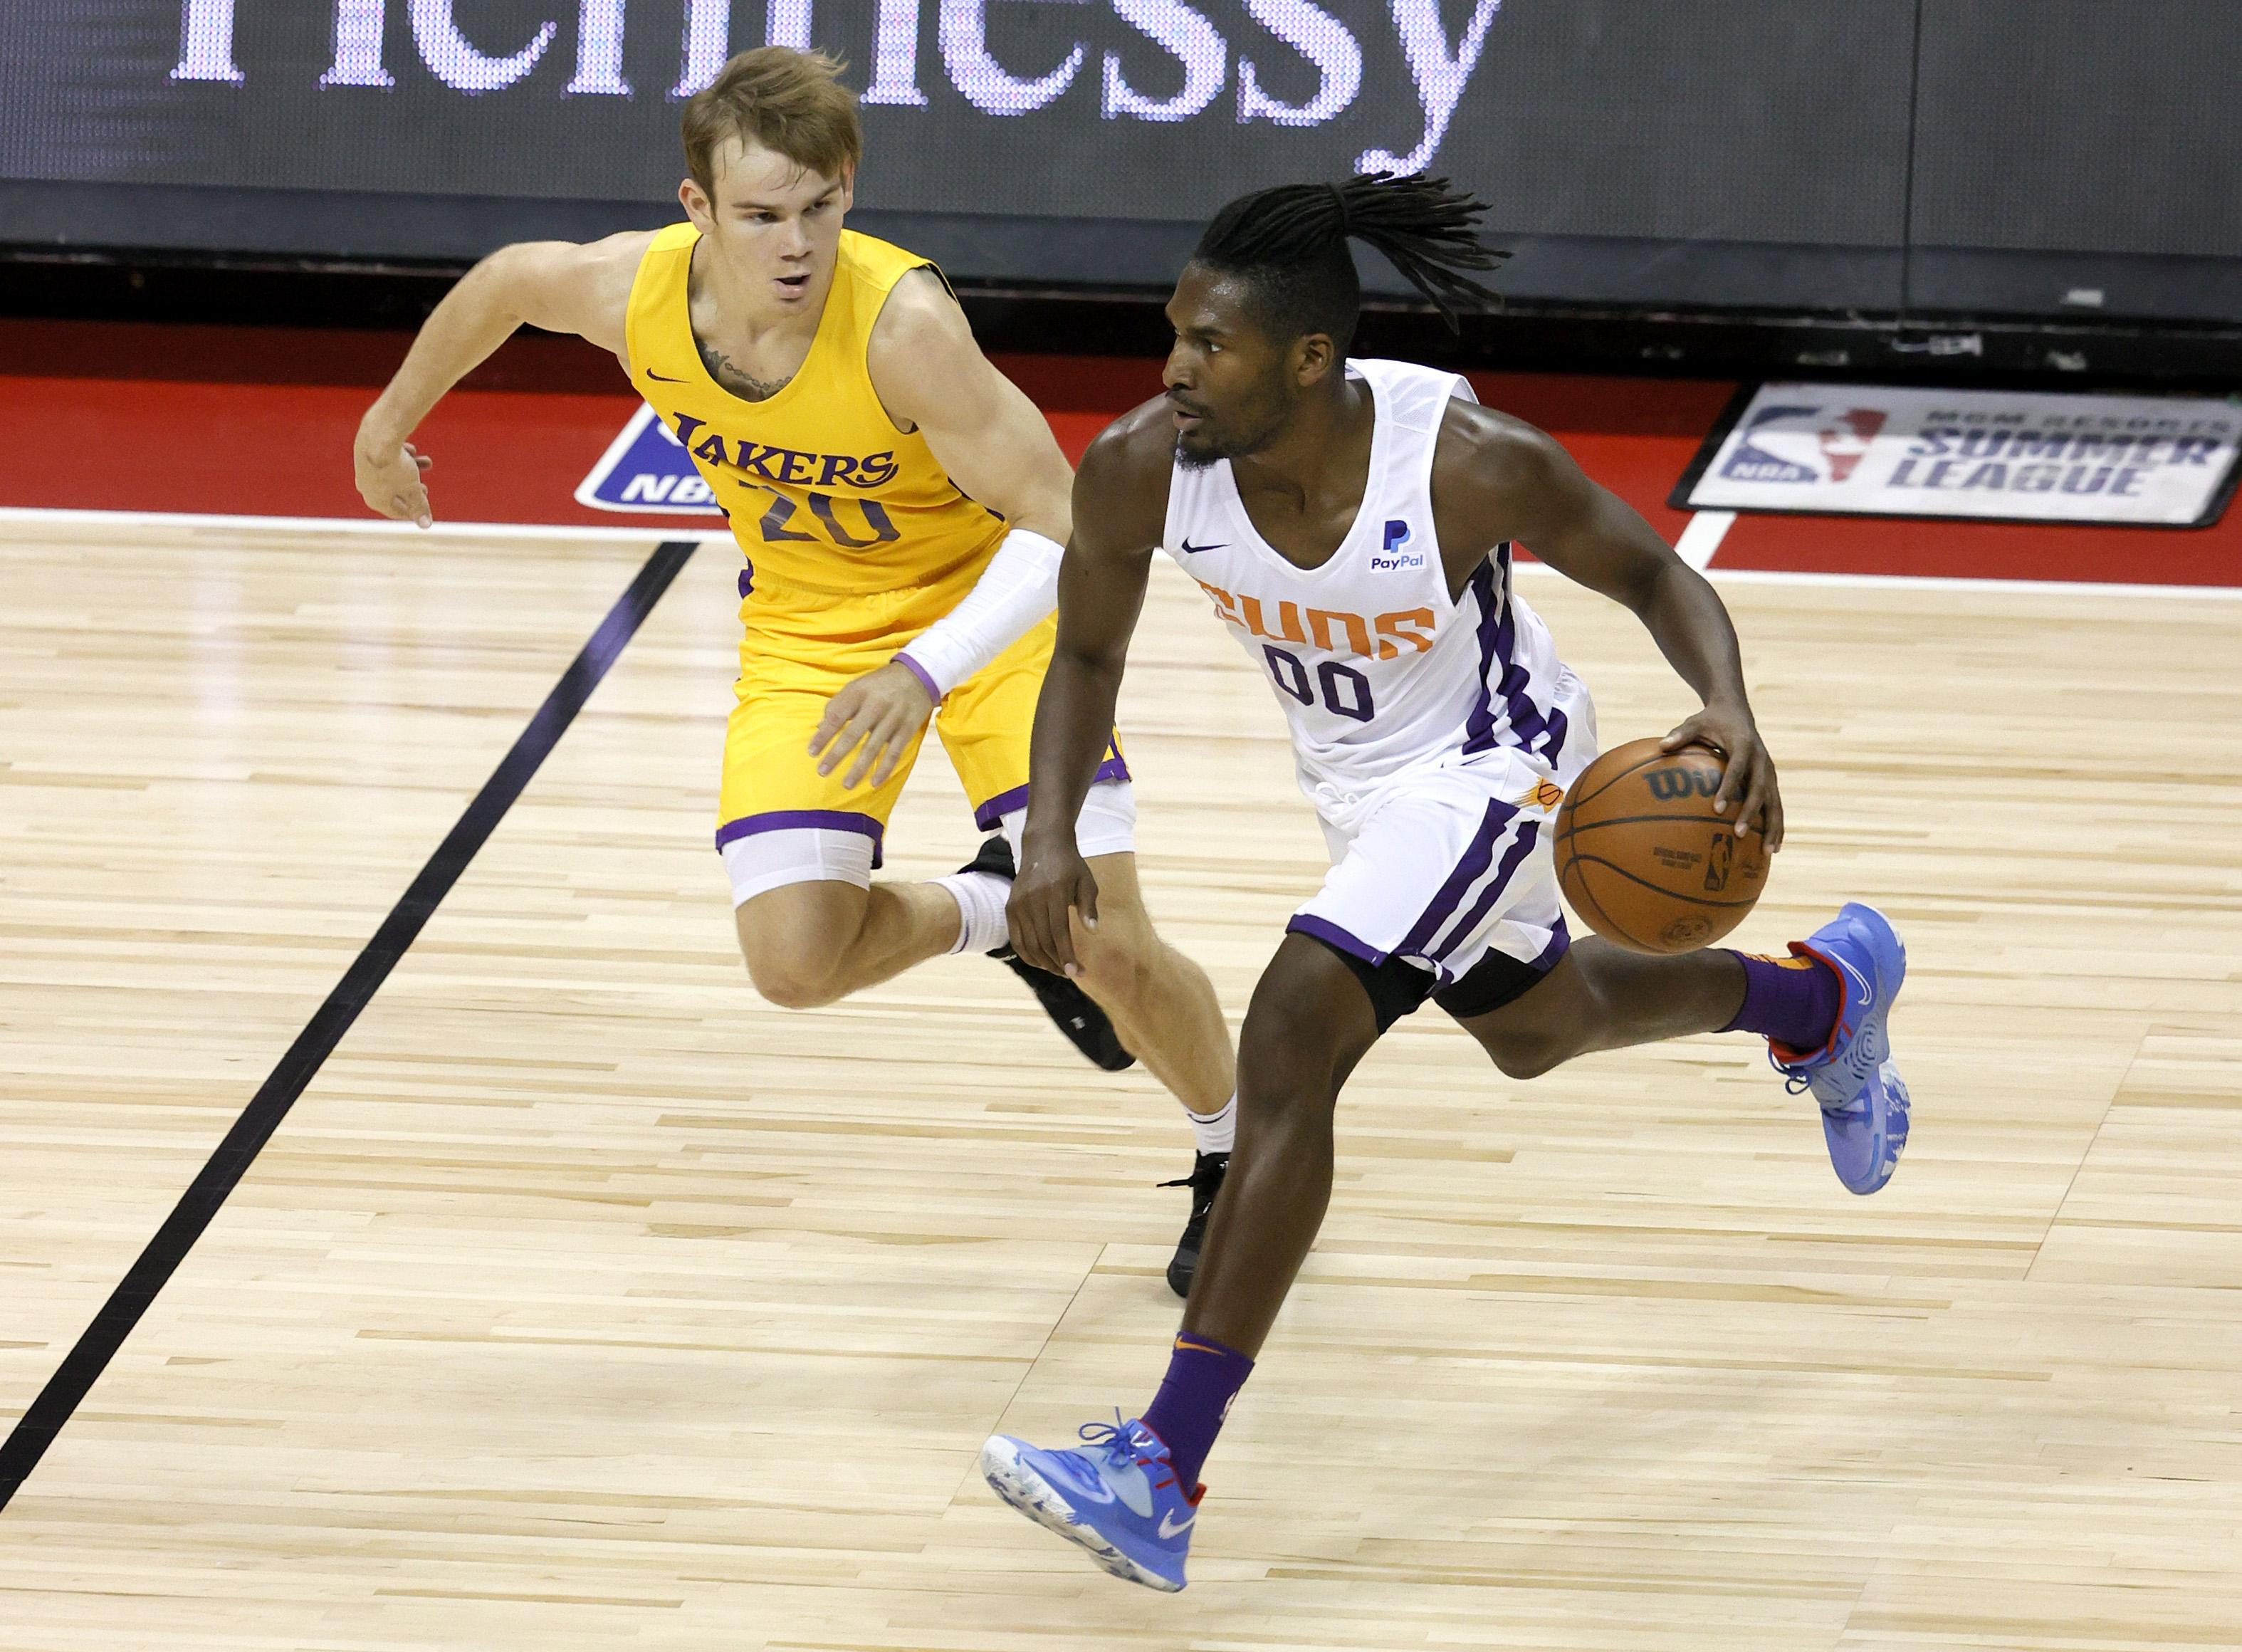 Jaleen Smith #00 of the Phoenix Suns brings the ball up the court against Mac McClung #20 of the Los Angeles Lakers